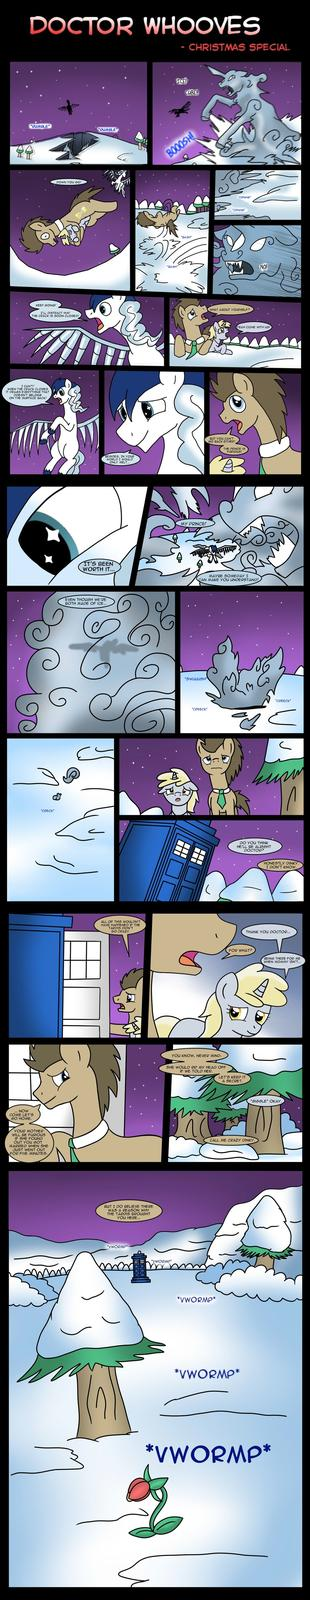 Doctor Whooves - Christmas Special End